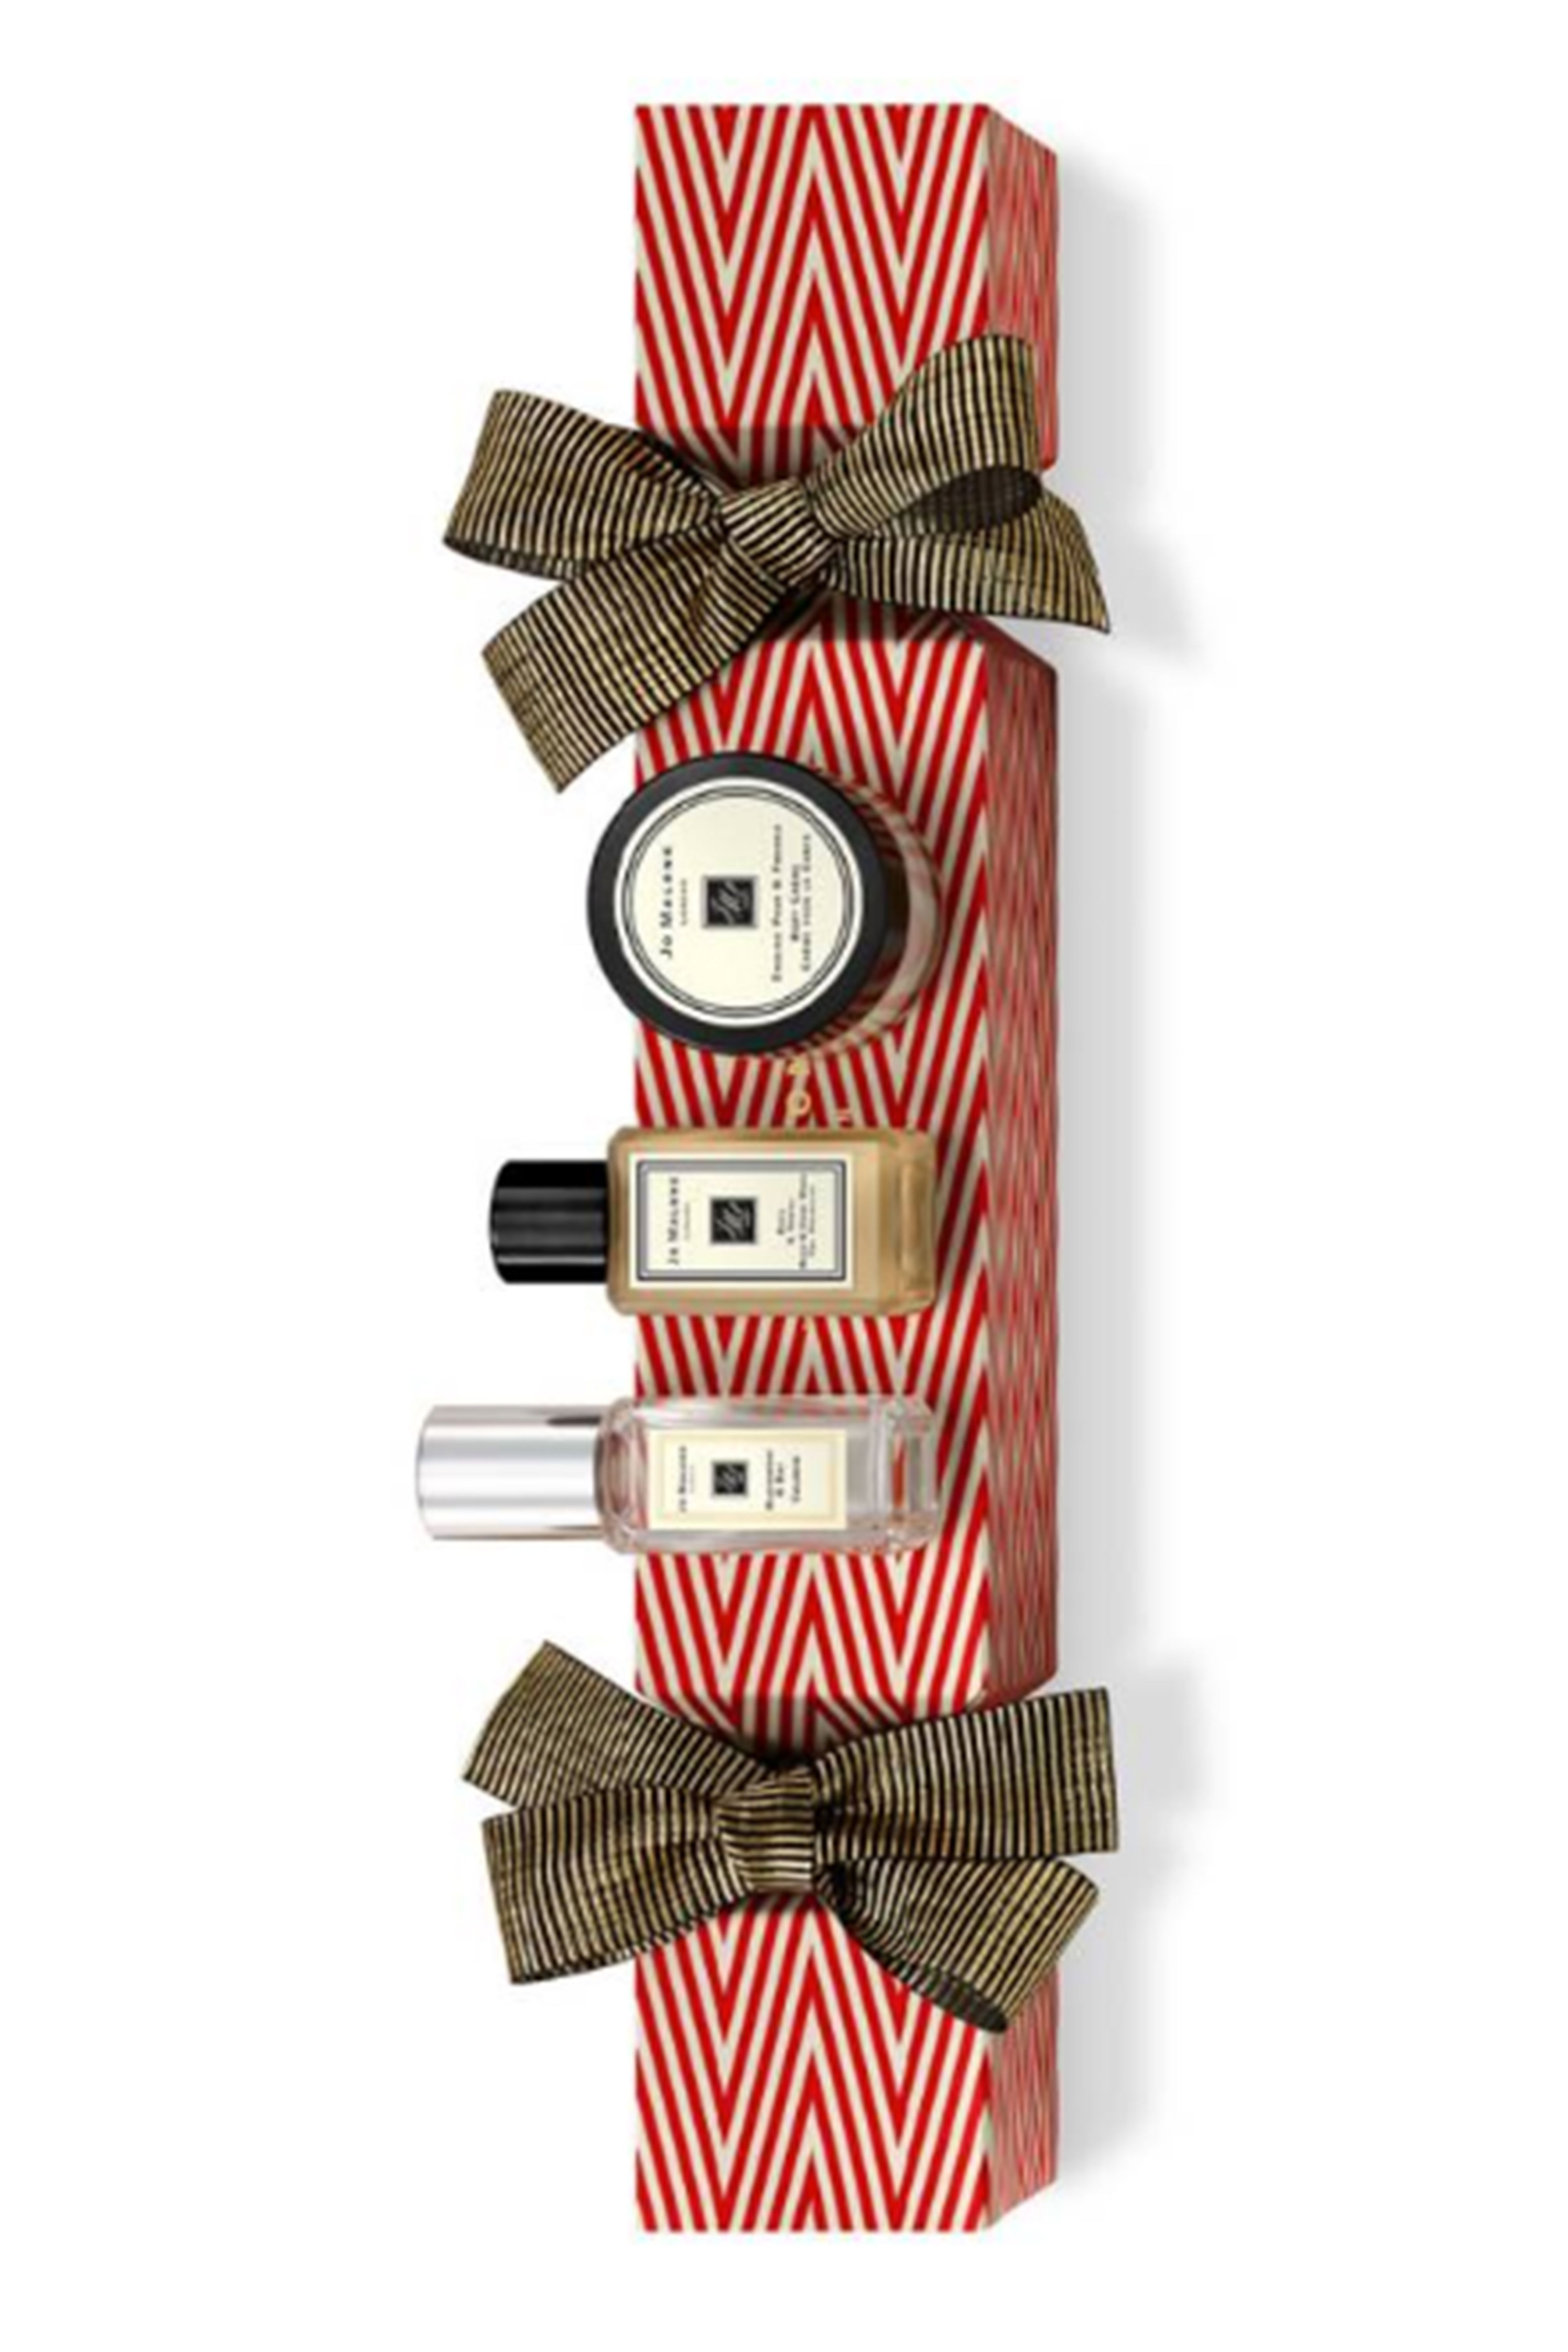 15 Best Luxury Christmas Crackers 2017 - Unique Holiday Crackers